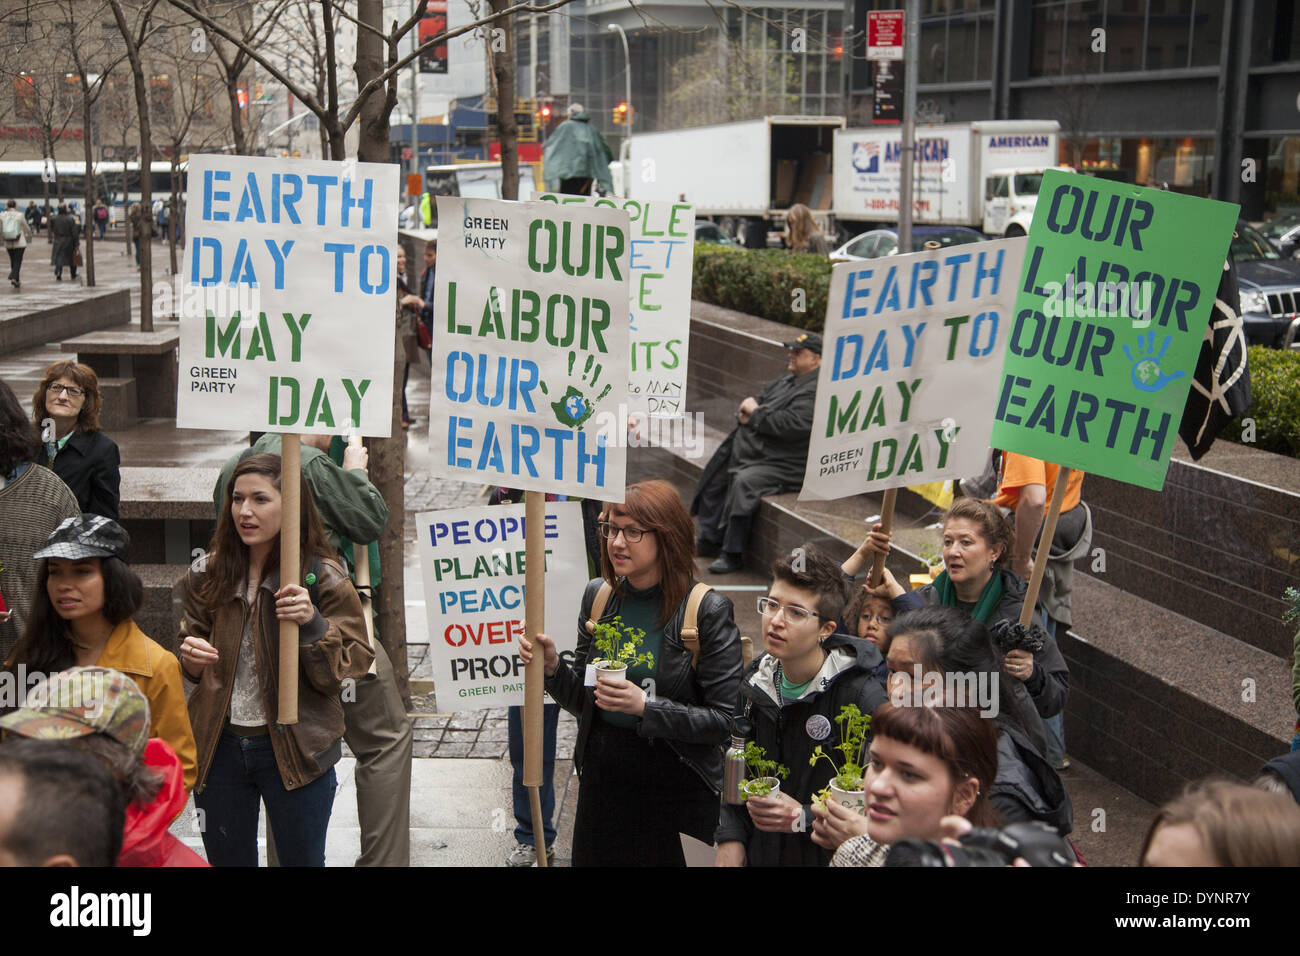 New York, NY, USA . 22nd Apr, 2014. Environmental activists rally on Earth Day at Zuccotti Park, then march to Wall Street calling for system change not climate change. The Occupy movement is still around in NYC it seems. Credit:  David Grossman/Alamy Live News - Stock Image